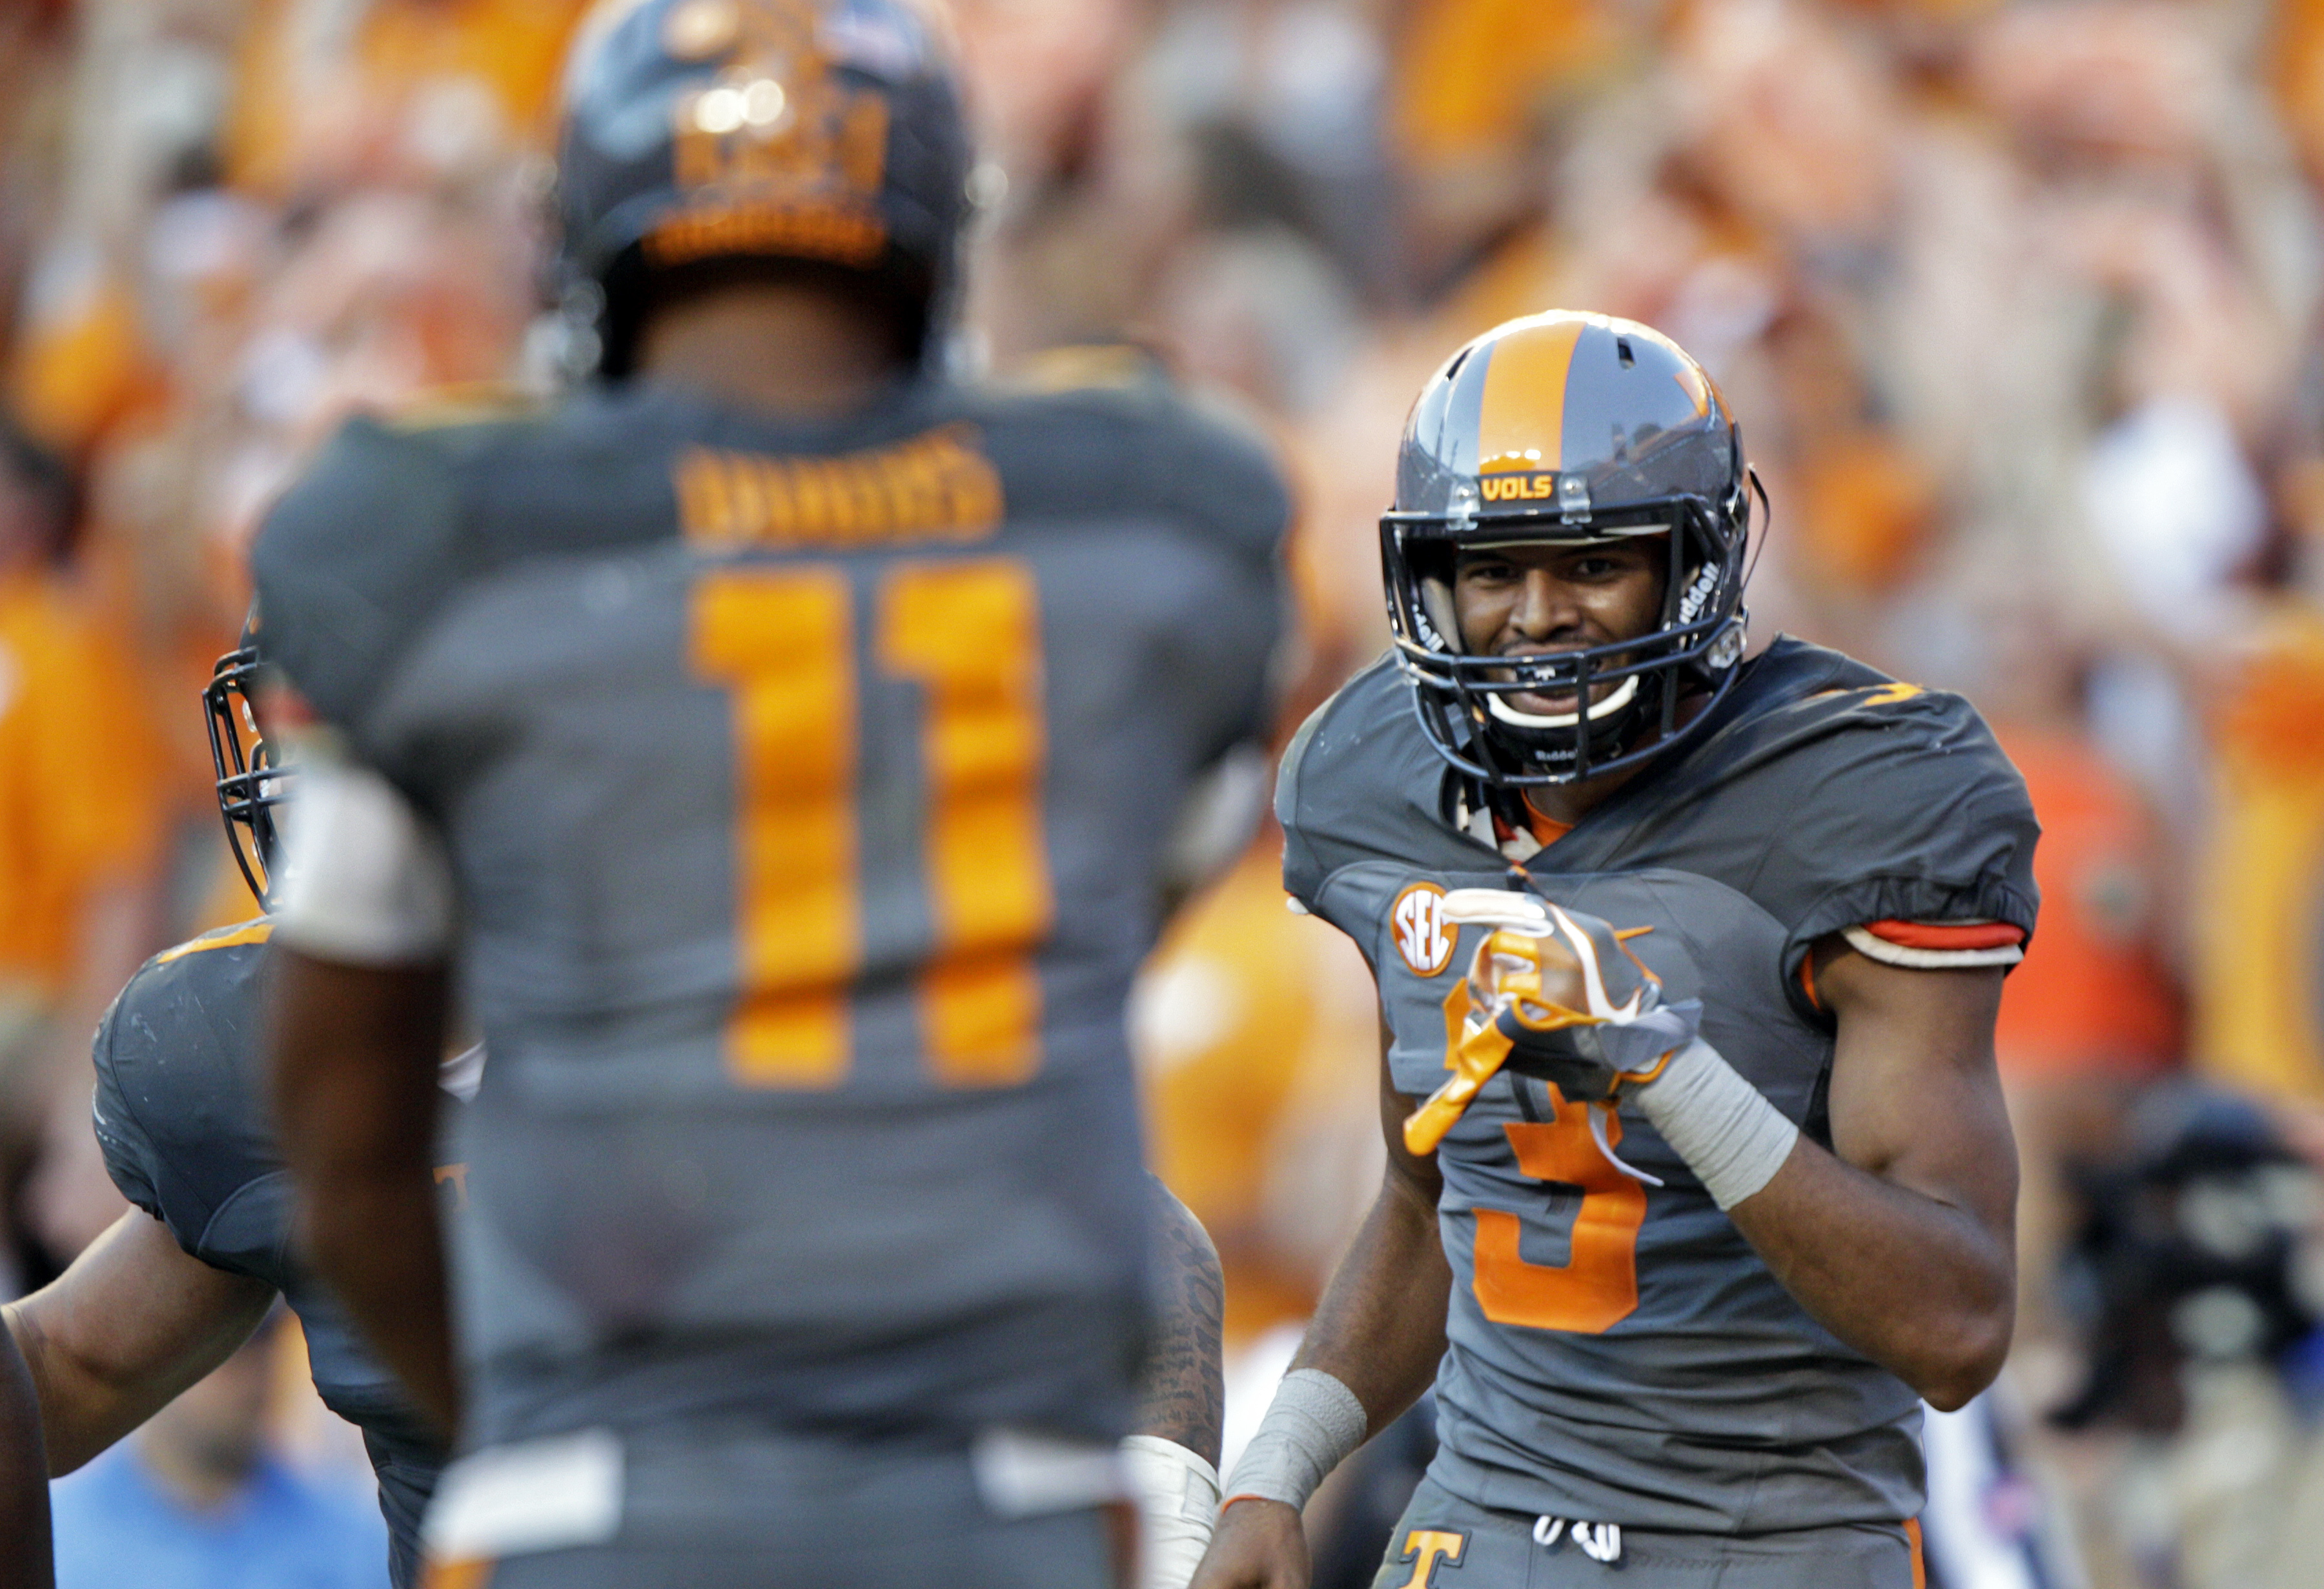 Tennessee wide receiver Josh Malone (3) reacts to a touchdown pass from quarterback Joshua Dobbs (11) during the second half of an NCAA college football game Saturday, Sept. 24, 2016, in Knoxville, Tenn. Tennessee won 38-28. (AP Photo/Wade Payne)